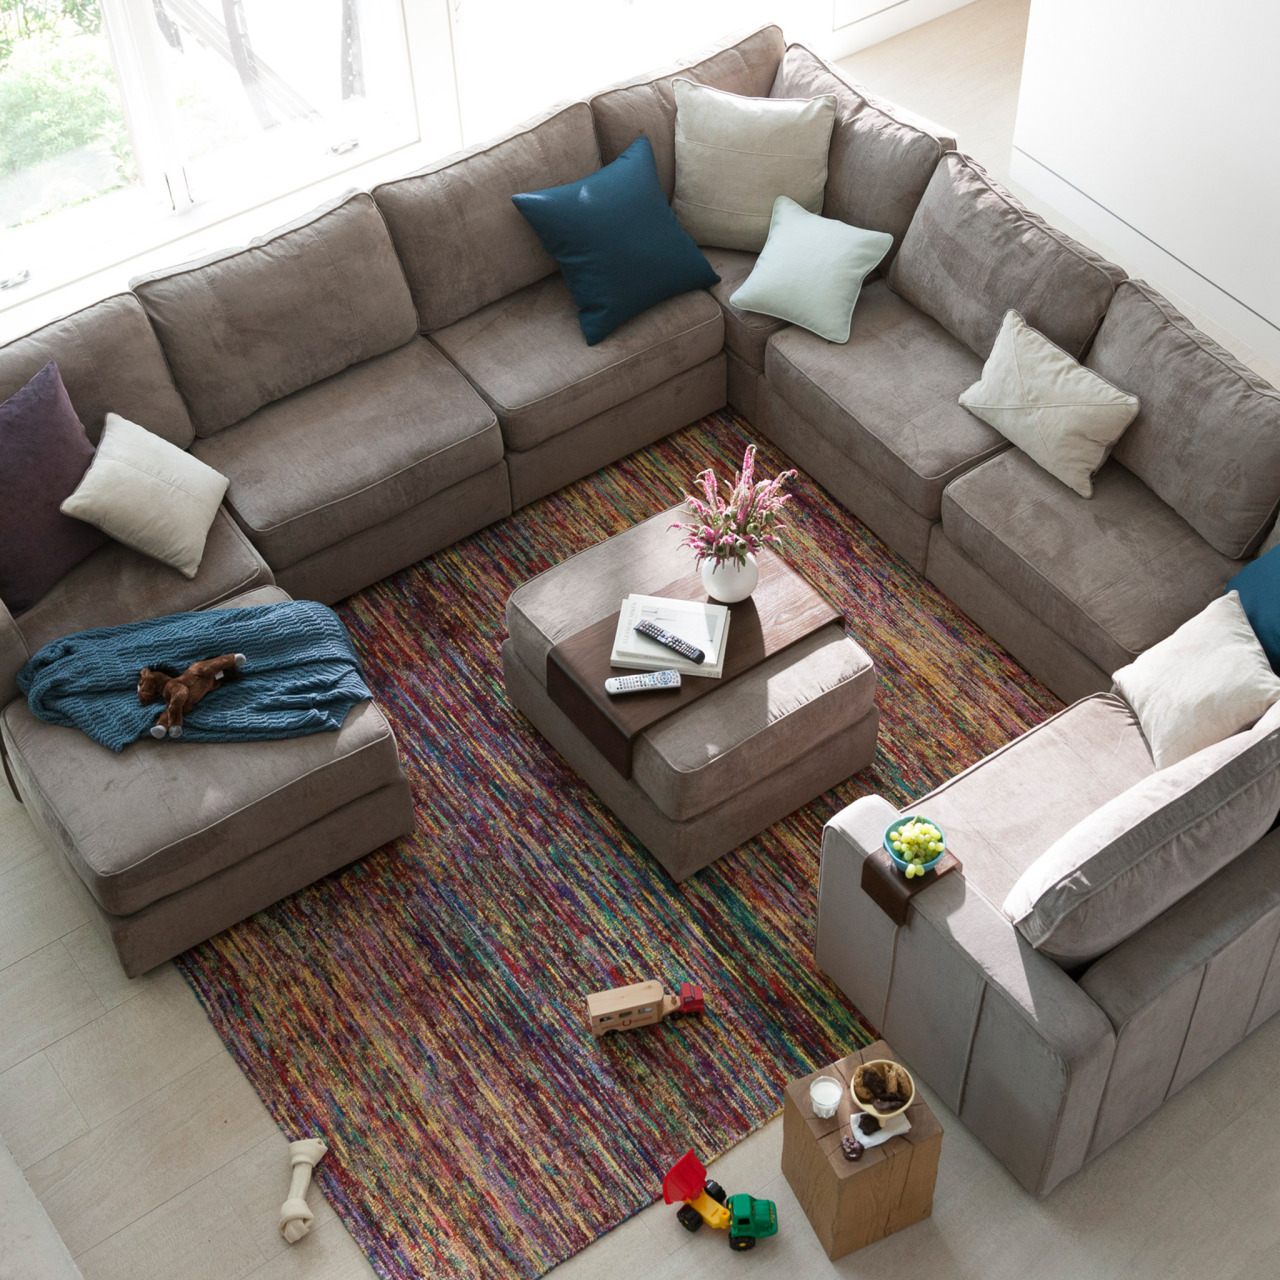 love sac chair squirrel feeder lovesac  we make sactionals the most adaptable couch in